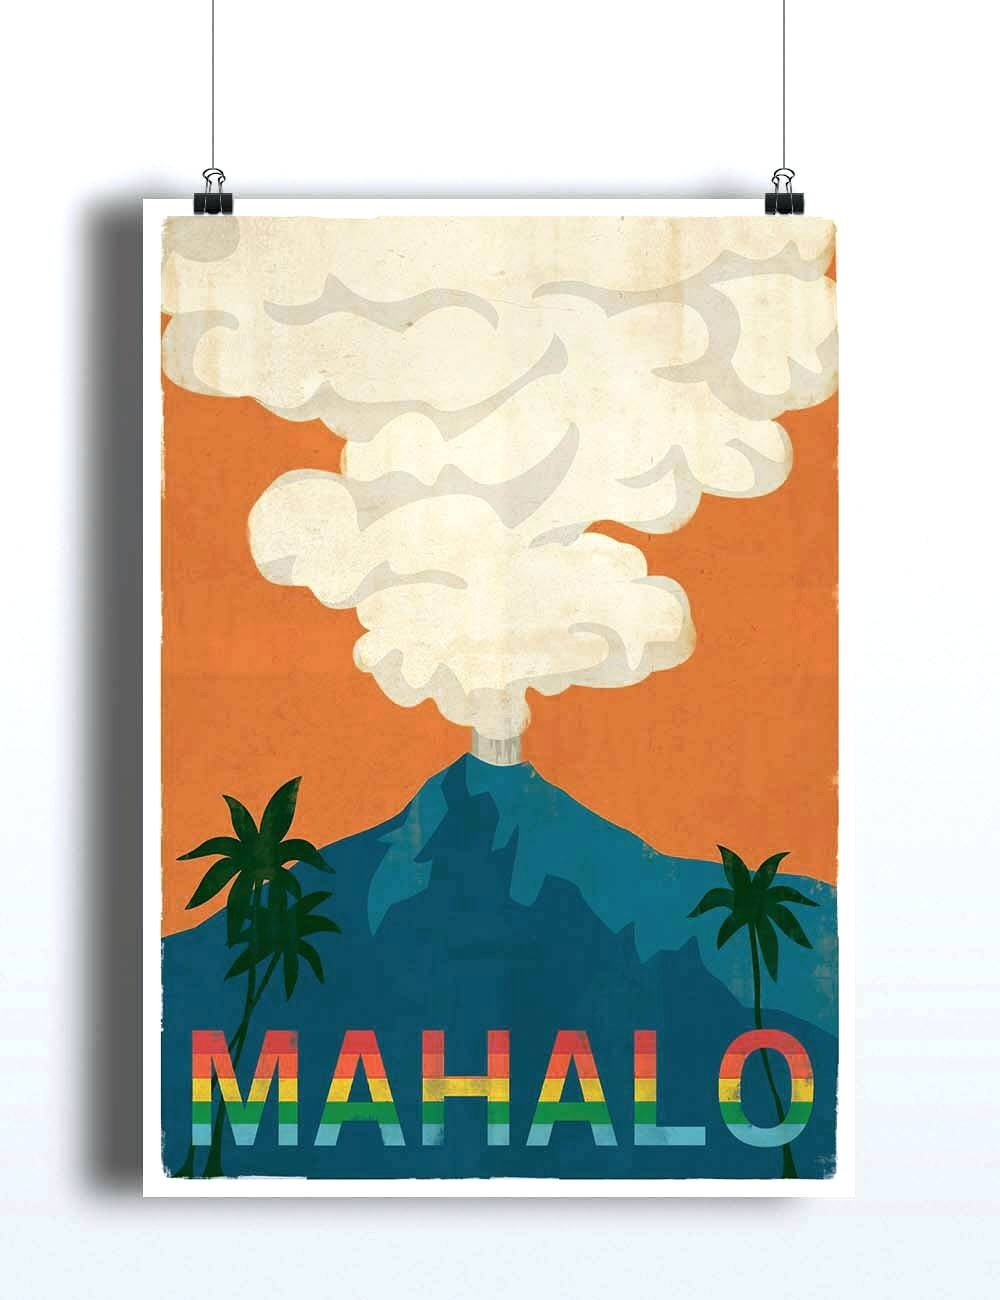 Wall Arts ~ Hawaiian Metal Wall Art Hawaiian Island Chain Metal For Best And Newest Hawaiian Metal Wall Art (View 11 of 20)